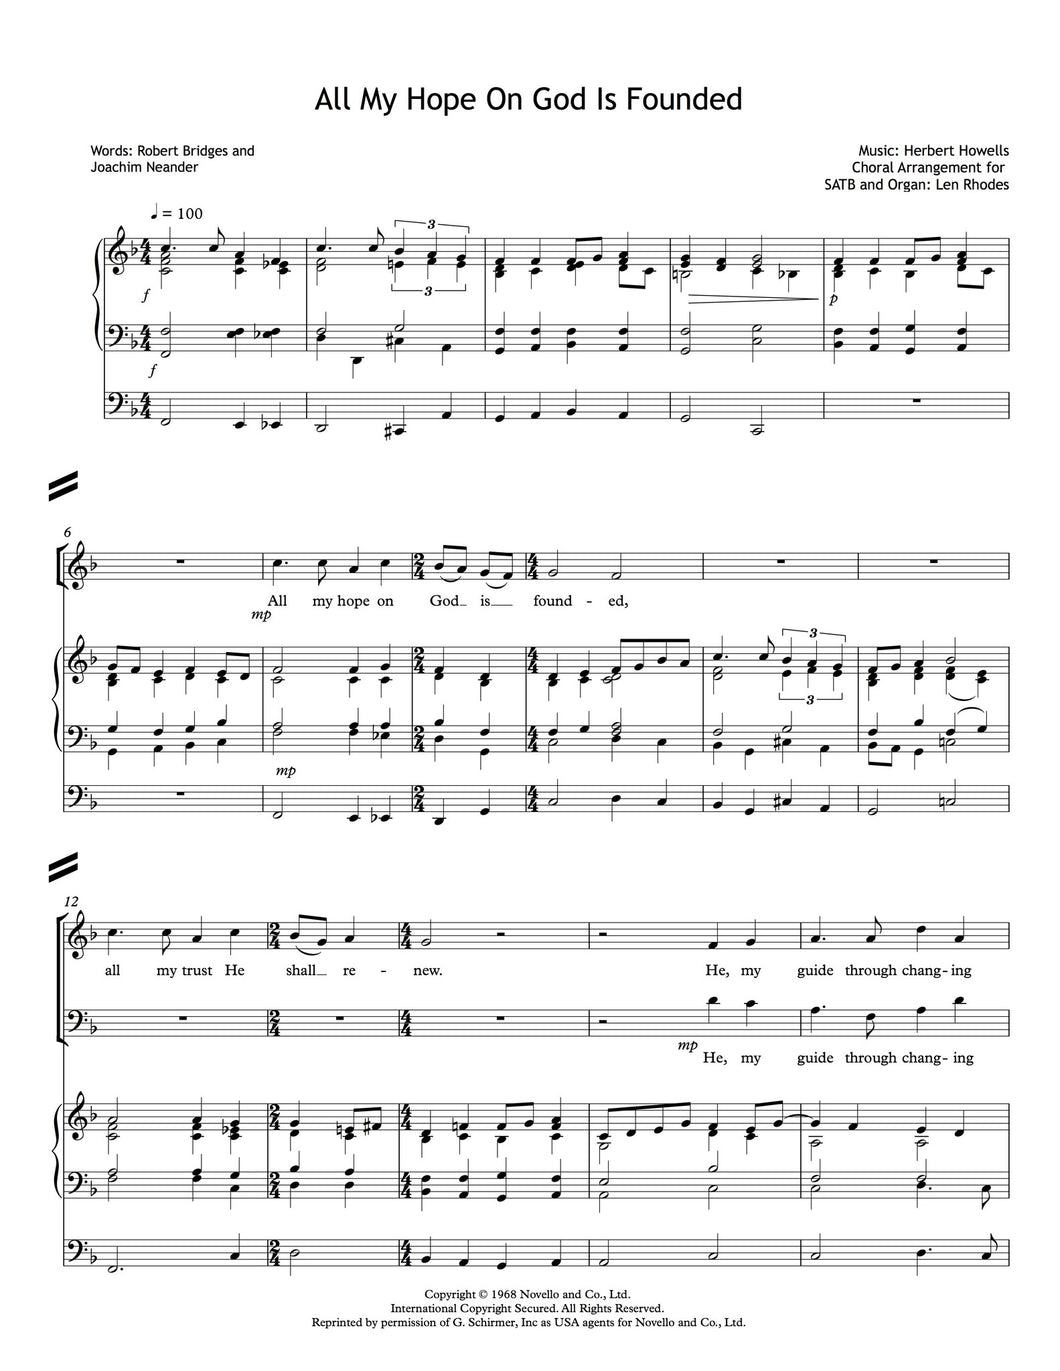 Howells - All My Hope On God Is Founded, for SATB and Organ